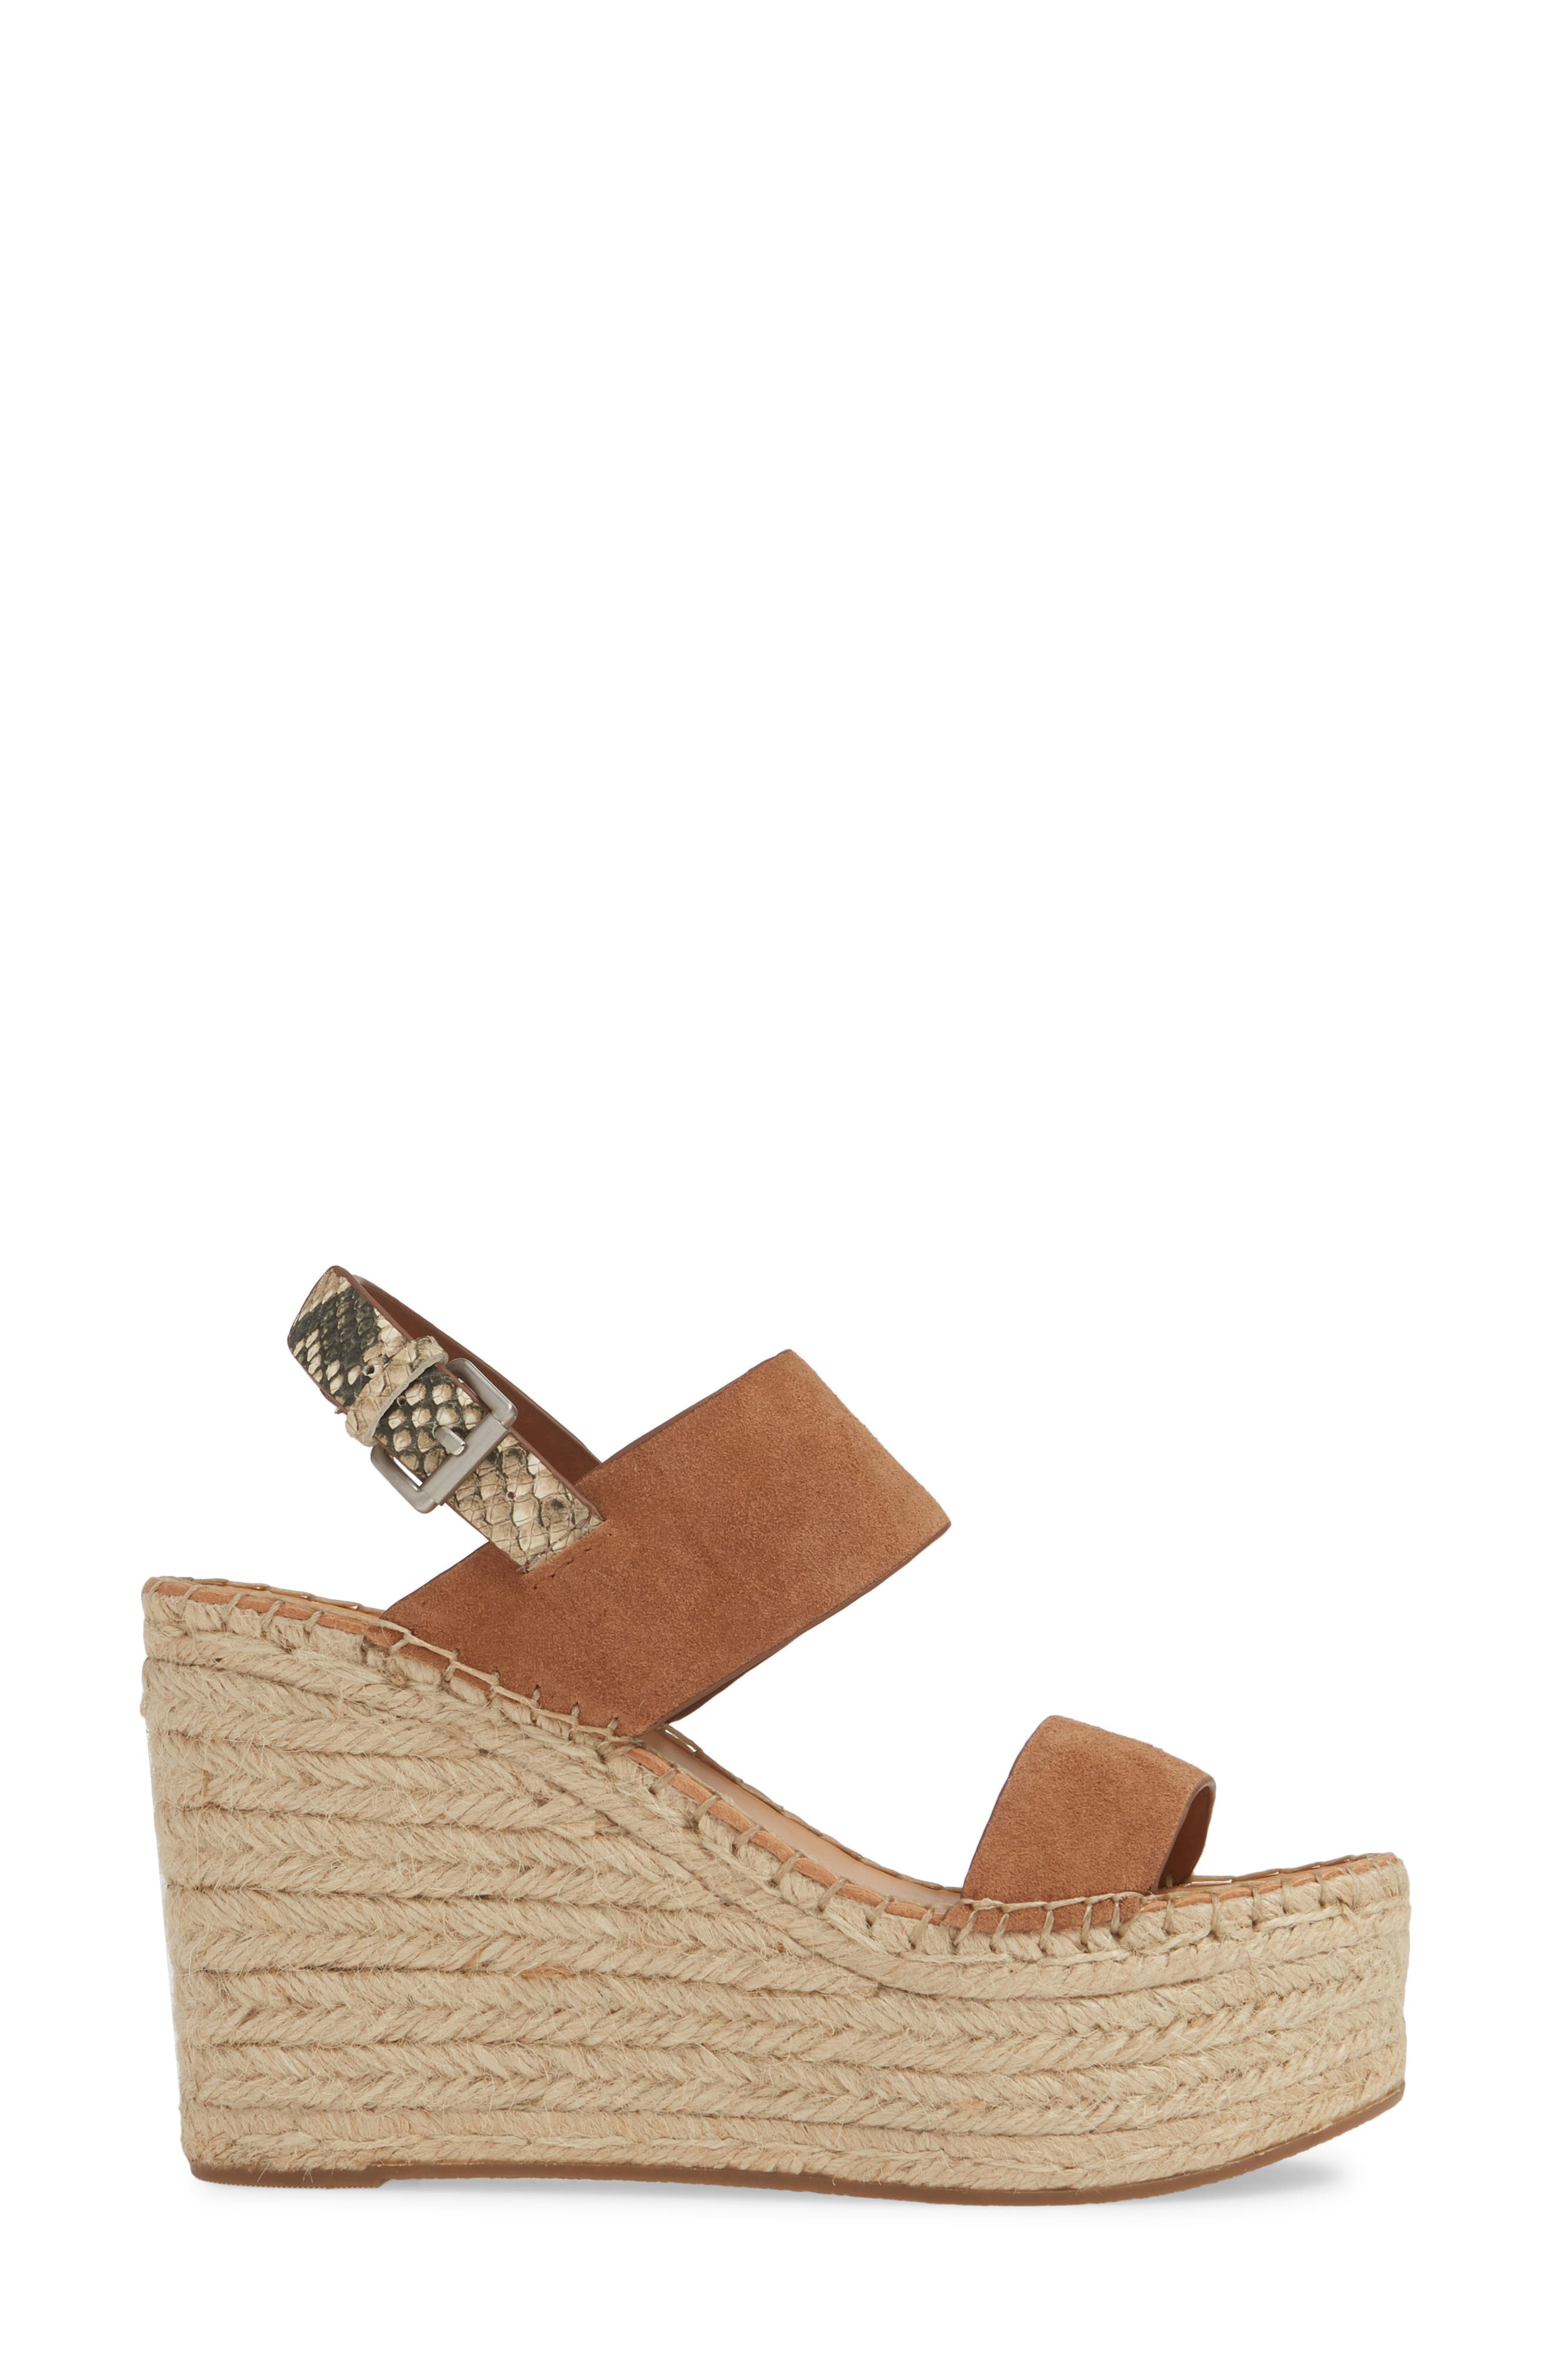 DOLCE VITA, Spiro Platform Wedge Sandal, Alternate thumbnail 3, color, BROWN SUEDE